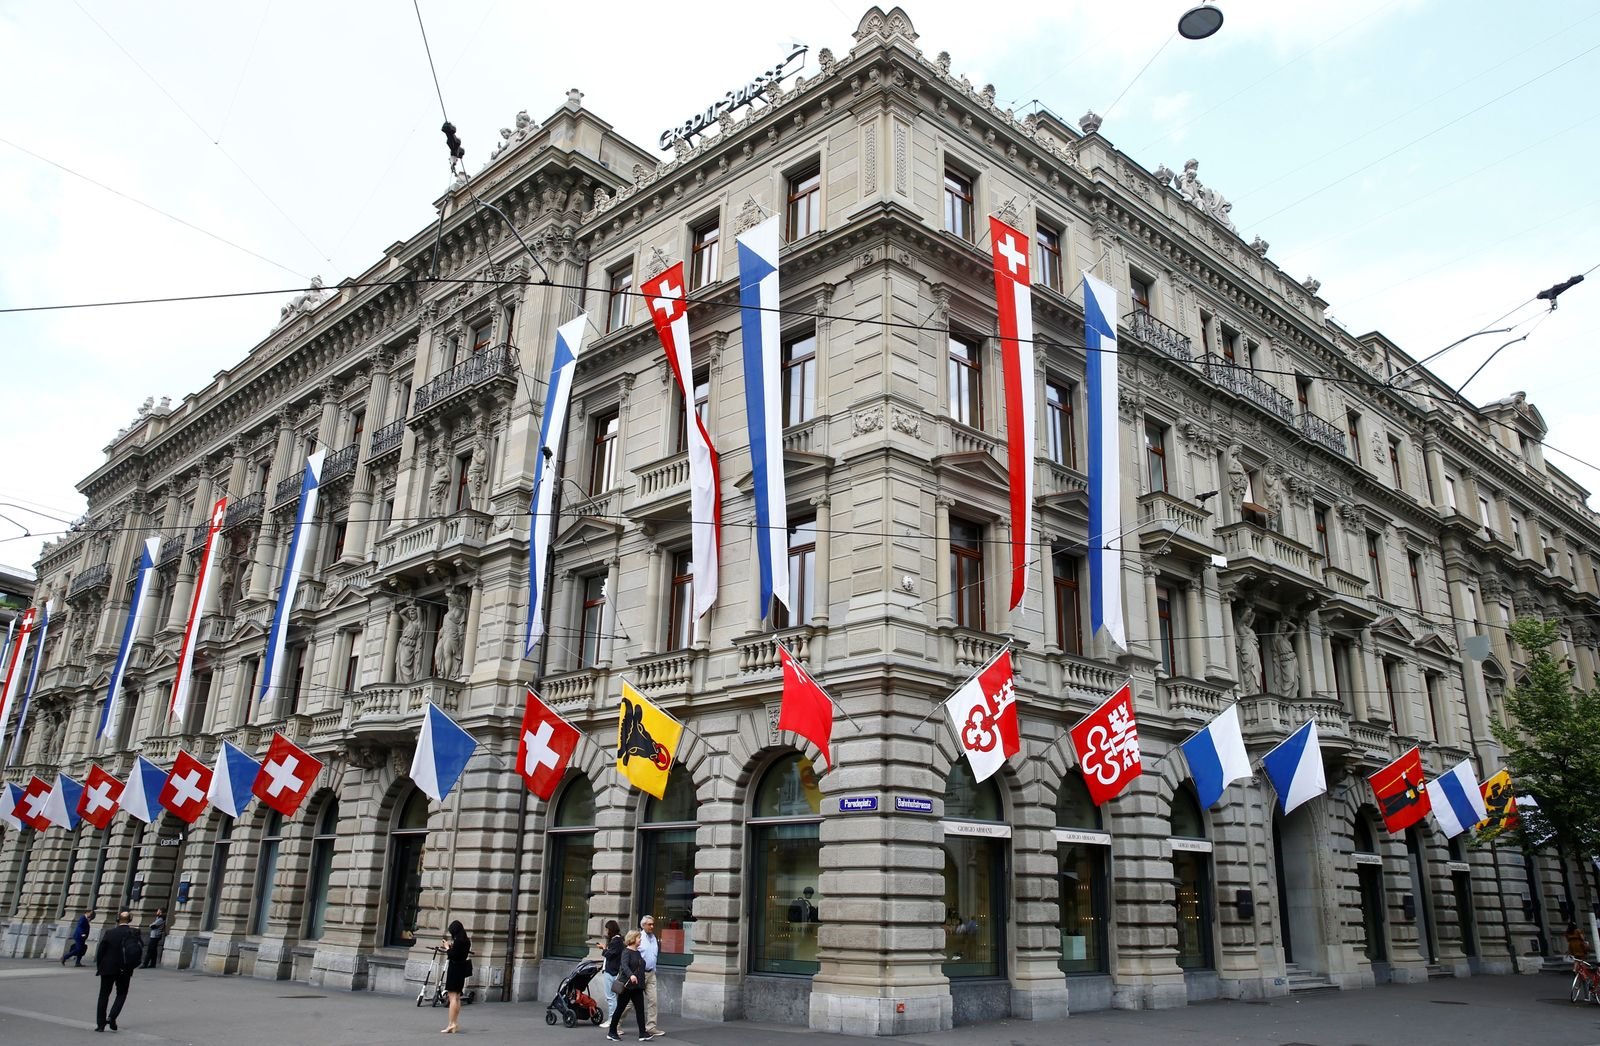 Switzerland's national flag and flags of the Swiss cantons fly at the headquarters of Swiss bank Credit Suisse in Zurich